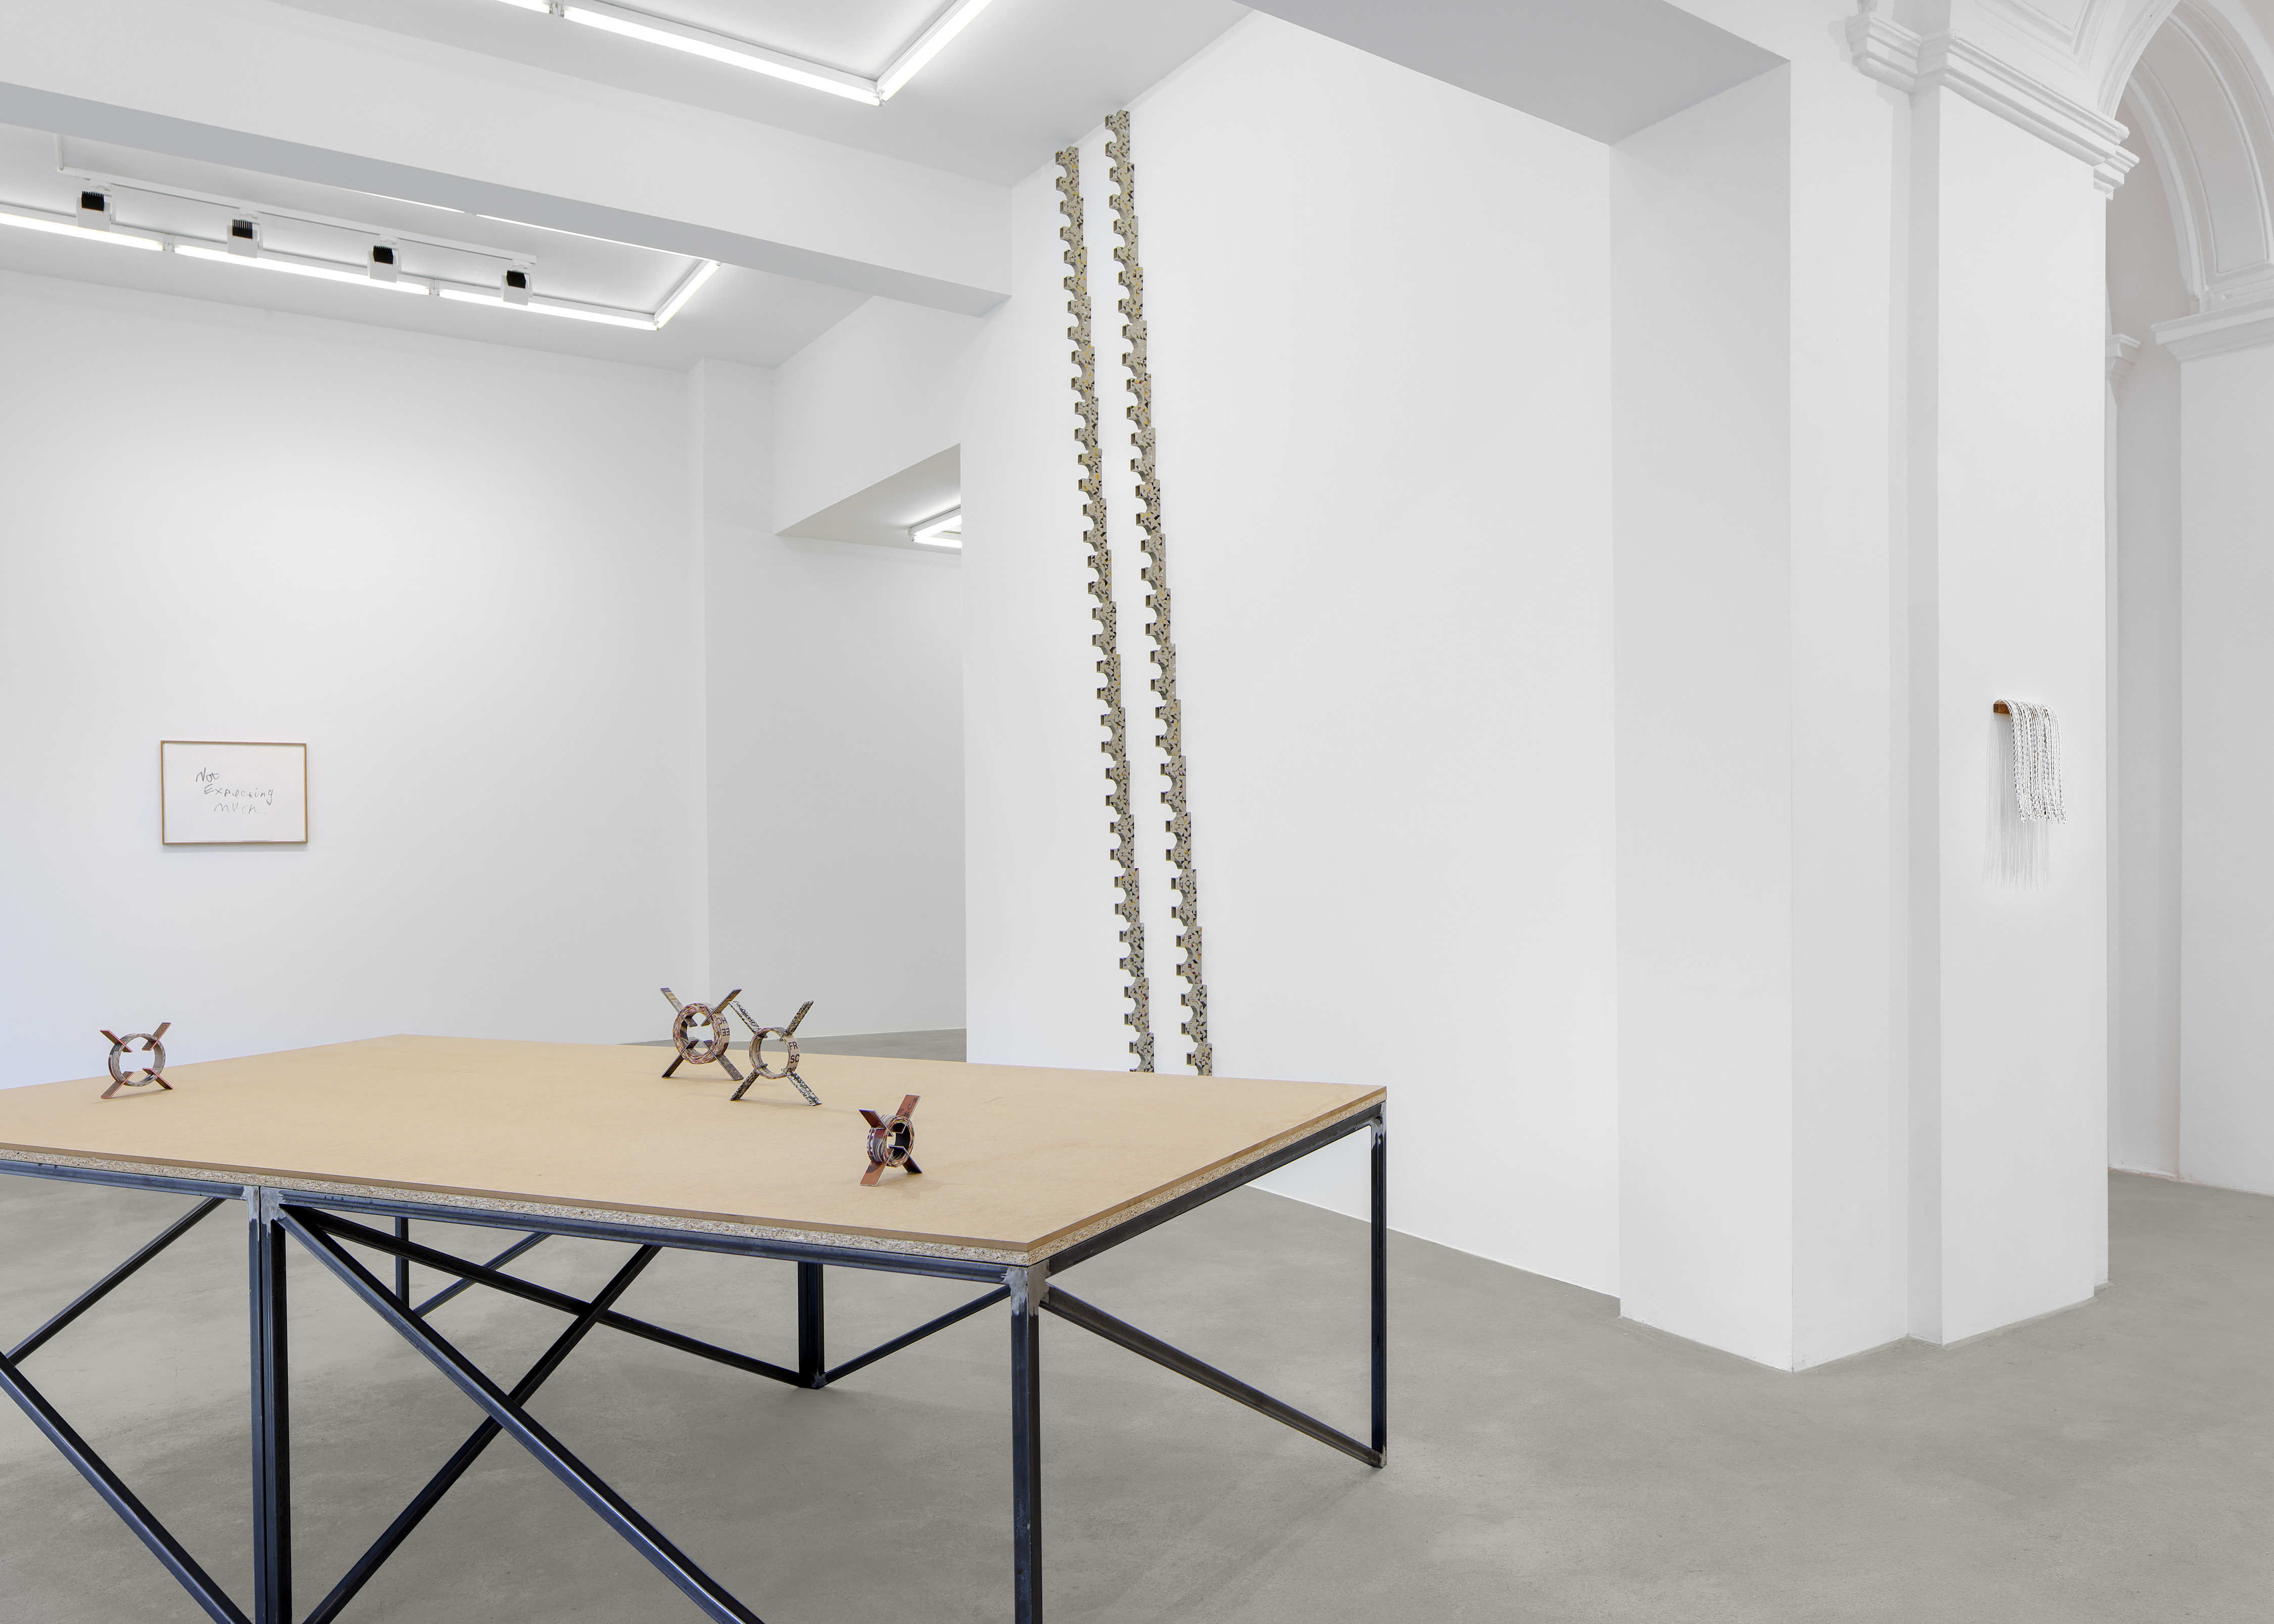 Installation view, 'distant borrowing'. Photography: Gunter Lepkowski. All images courtesy of the artist and Tanya Leighton, Berlin.